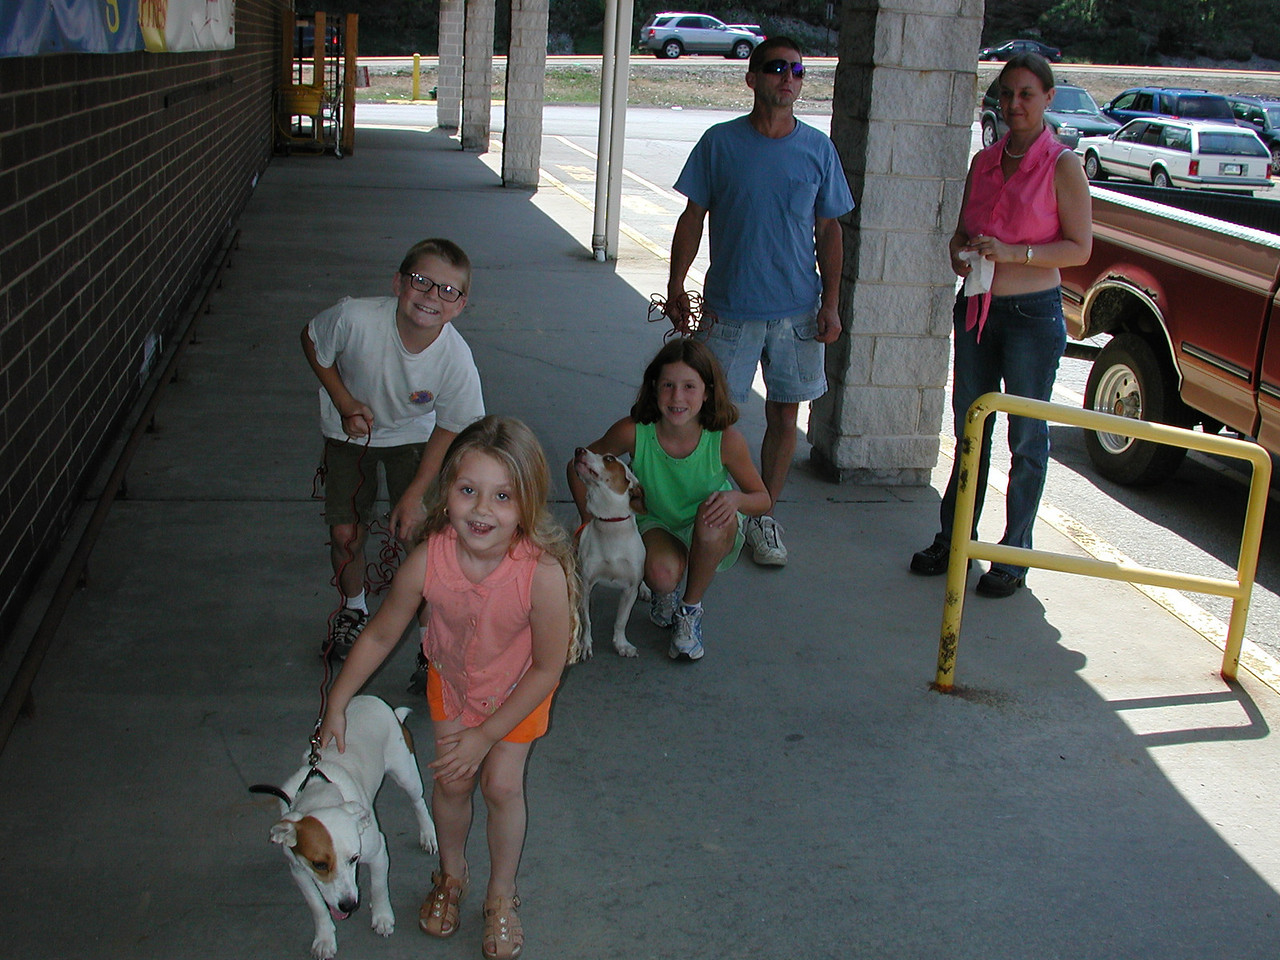 We leave our dogs, Cannonball and Snowball with friends. In this picture we met at a Giant Eagle in Murrysville to say goodbye to our animals for the trip.